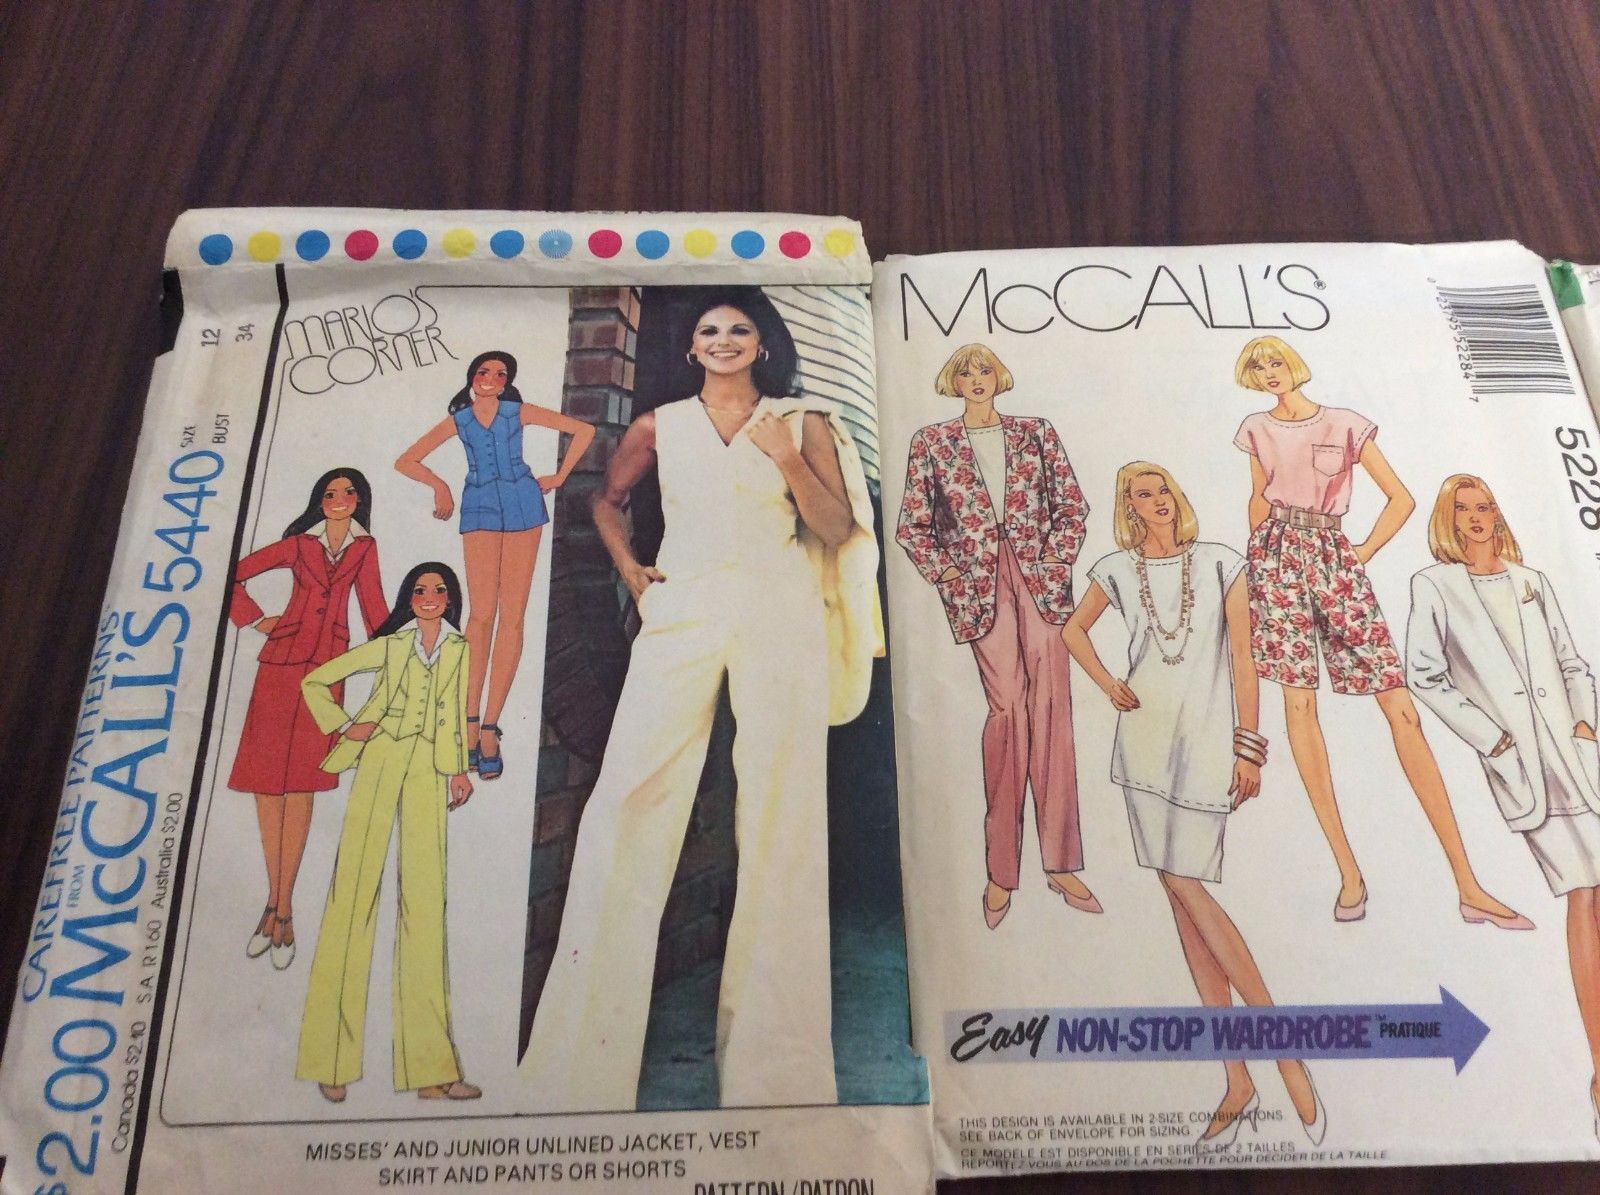 Lot of 8 vintage 1970-1990's Sewing Patterns Dresses, Blouses, Skirts, Career